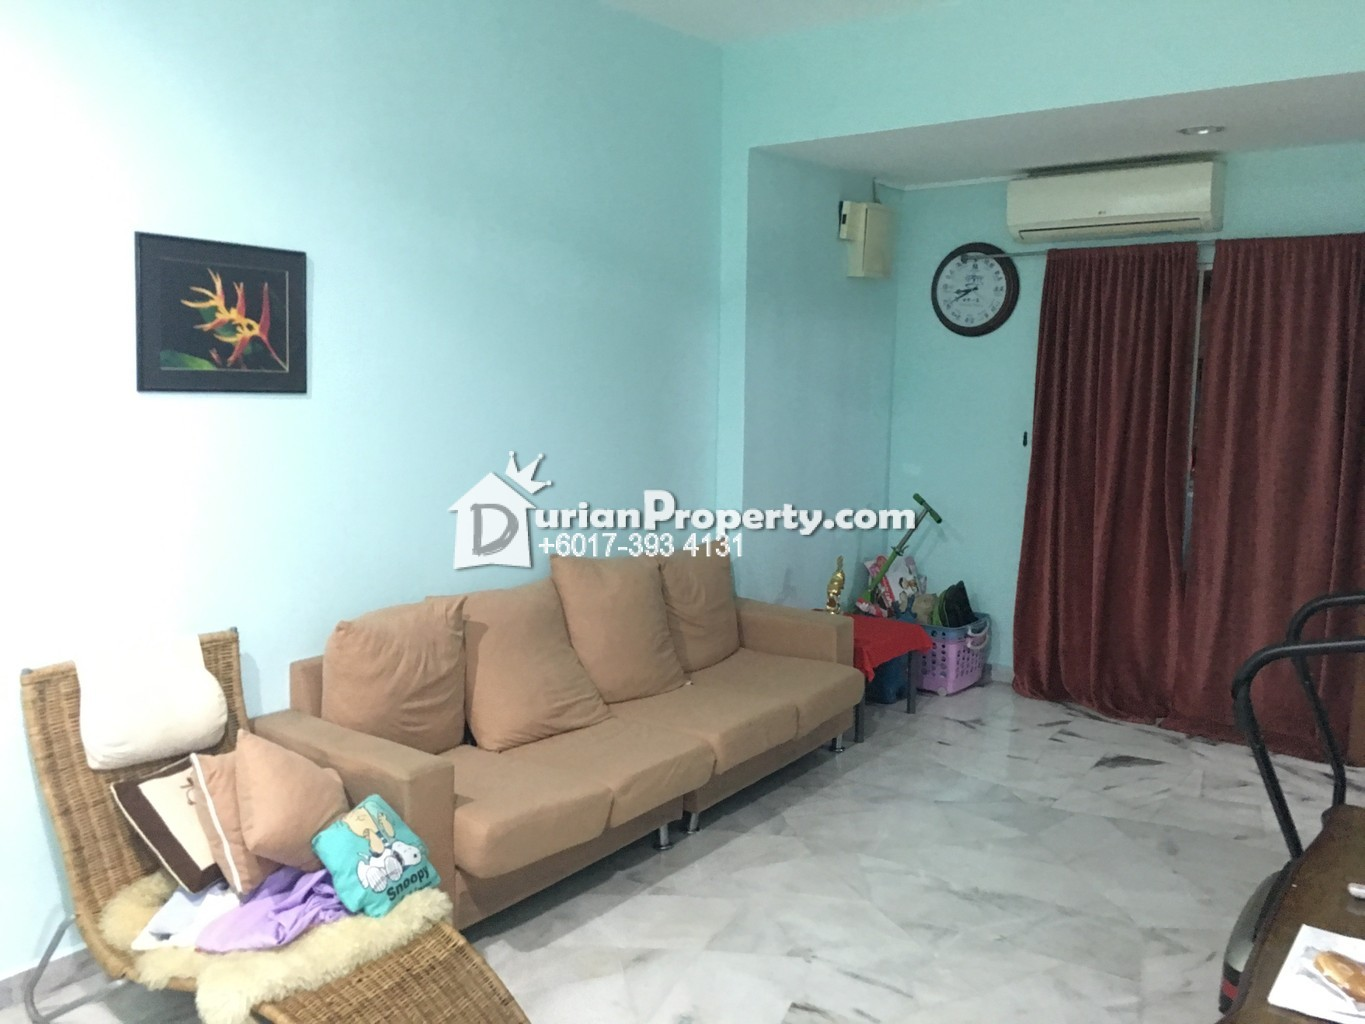 Terrace House For Sale at Taman Tan Yew Lai, Old Klang Road for RM ...